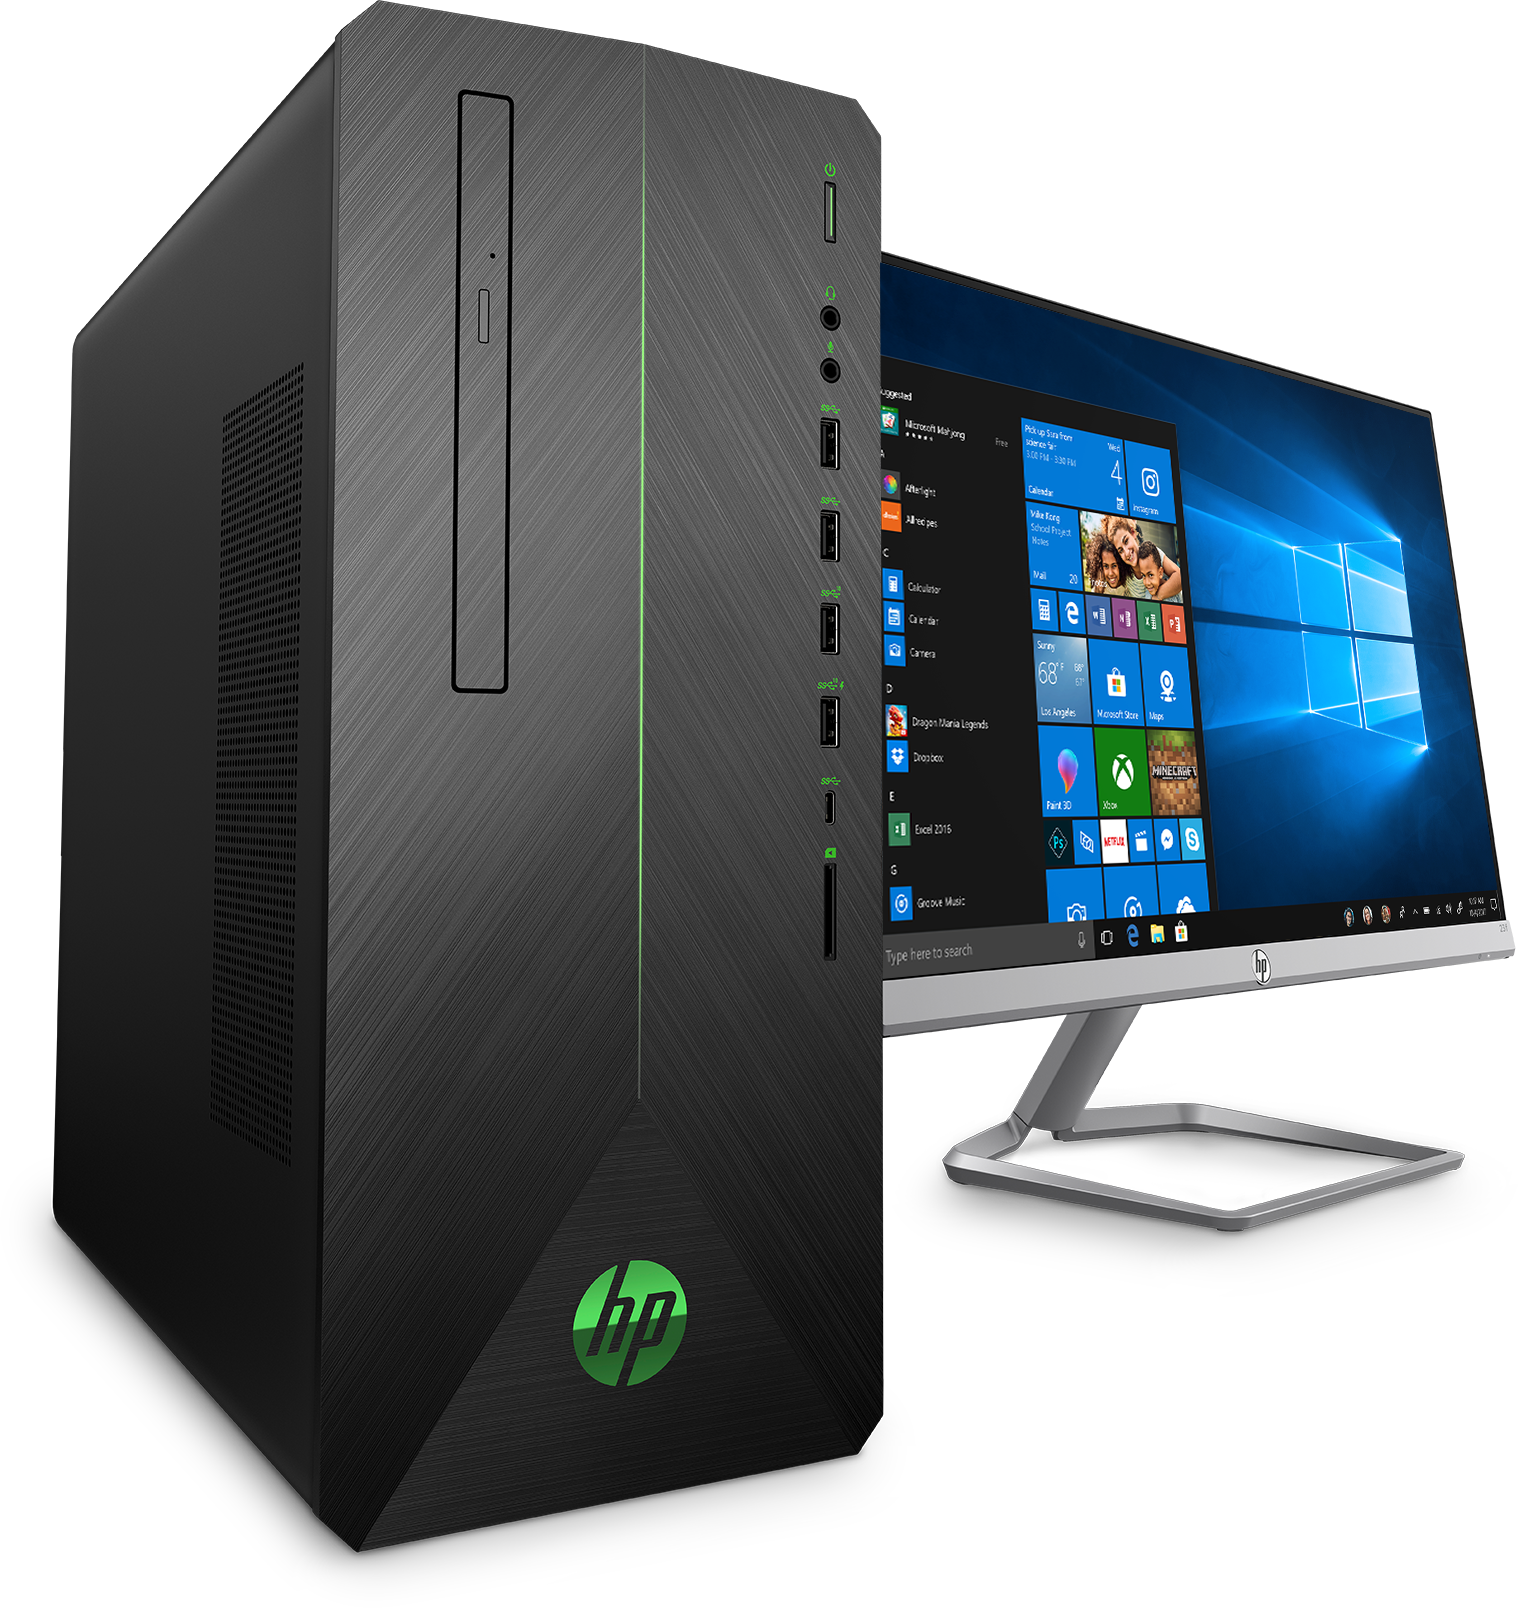 Front right view of the HP Pavilion Gaming Desktop